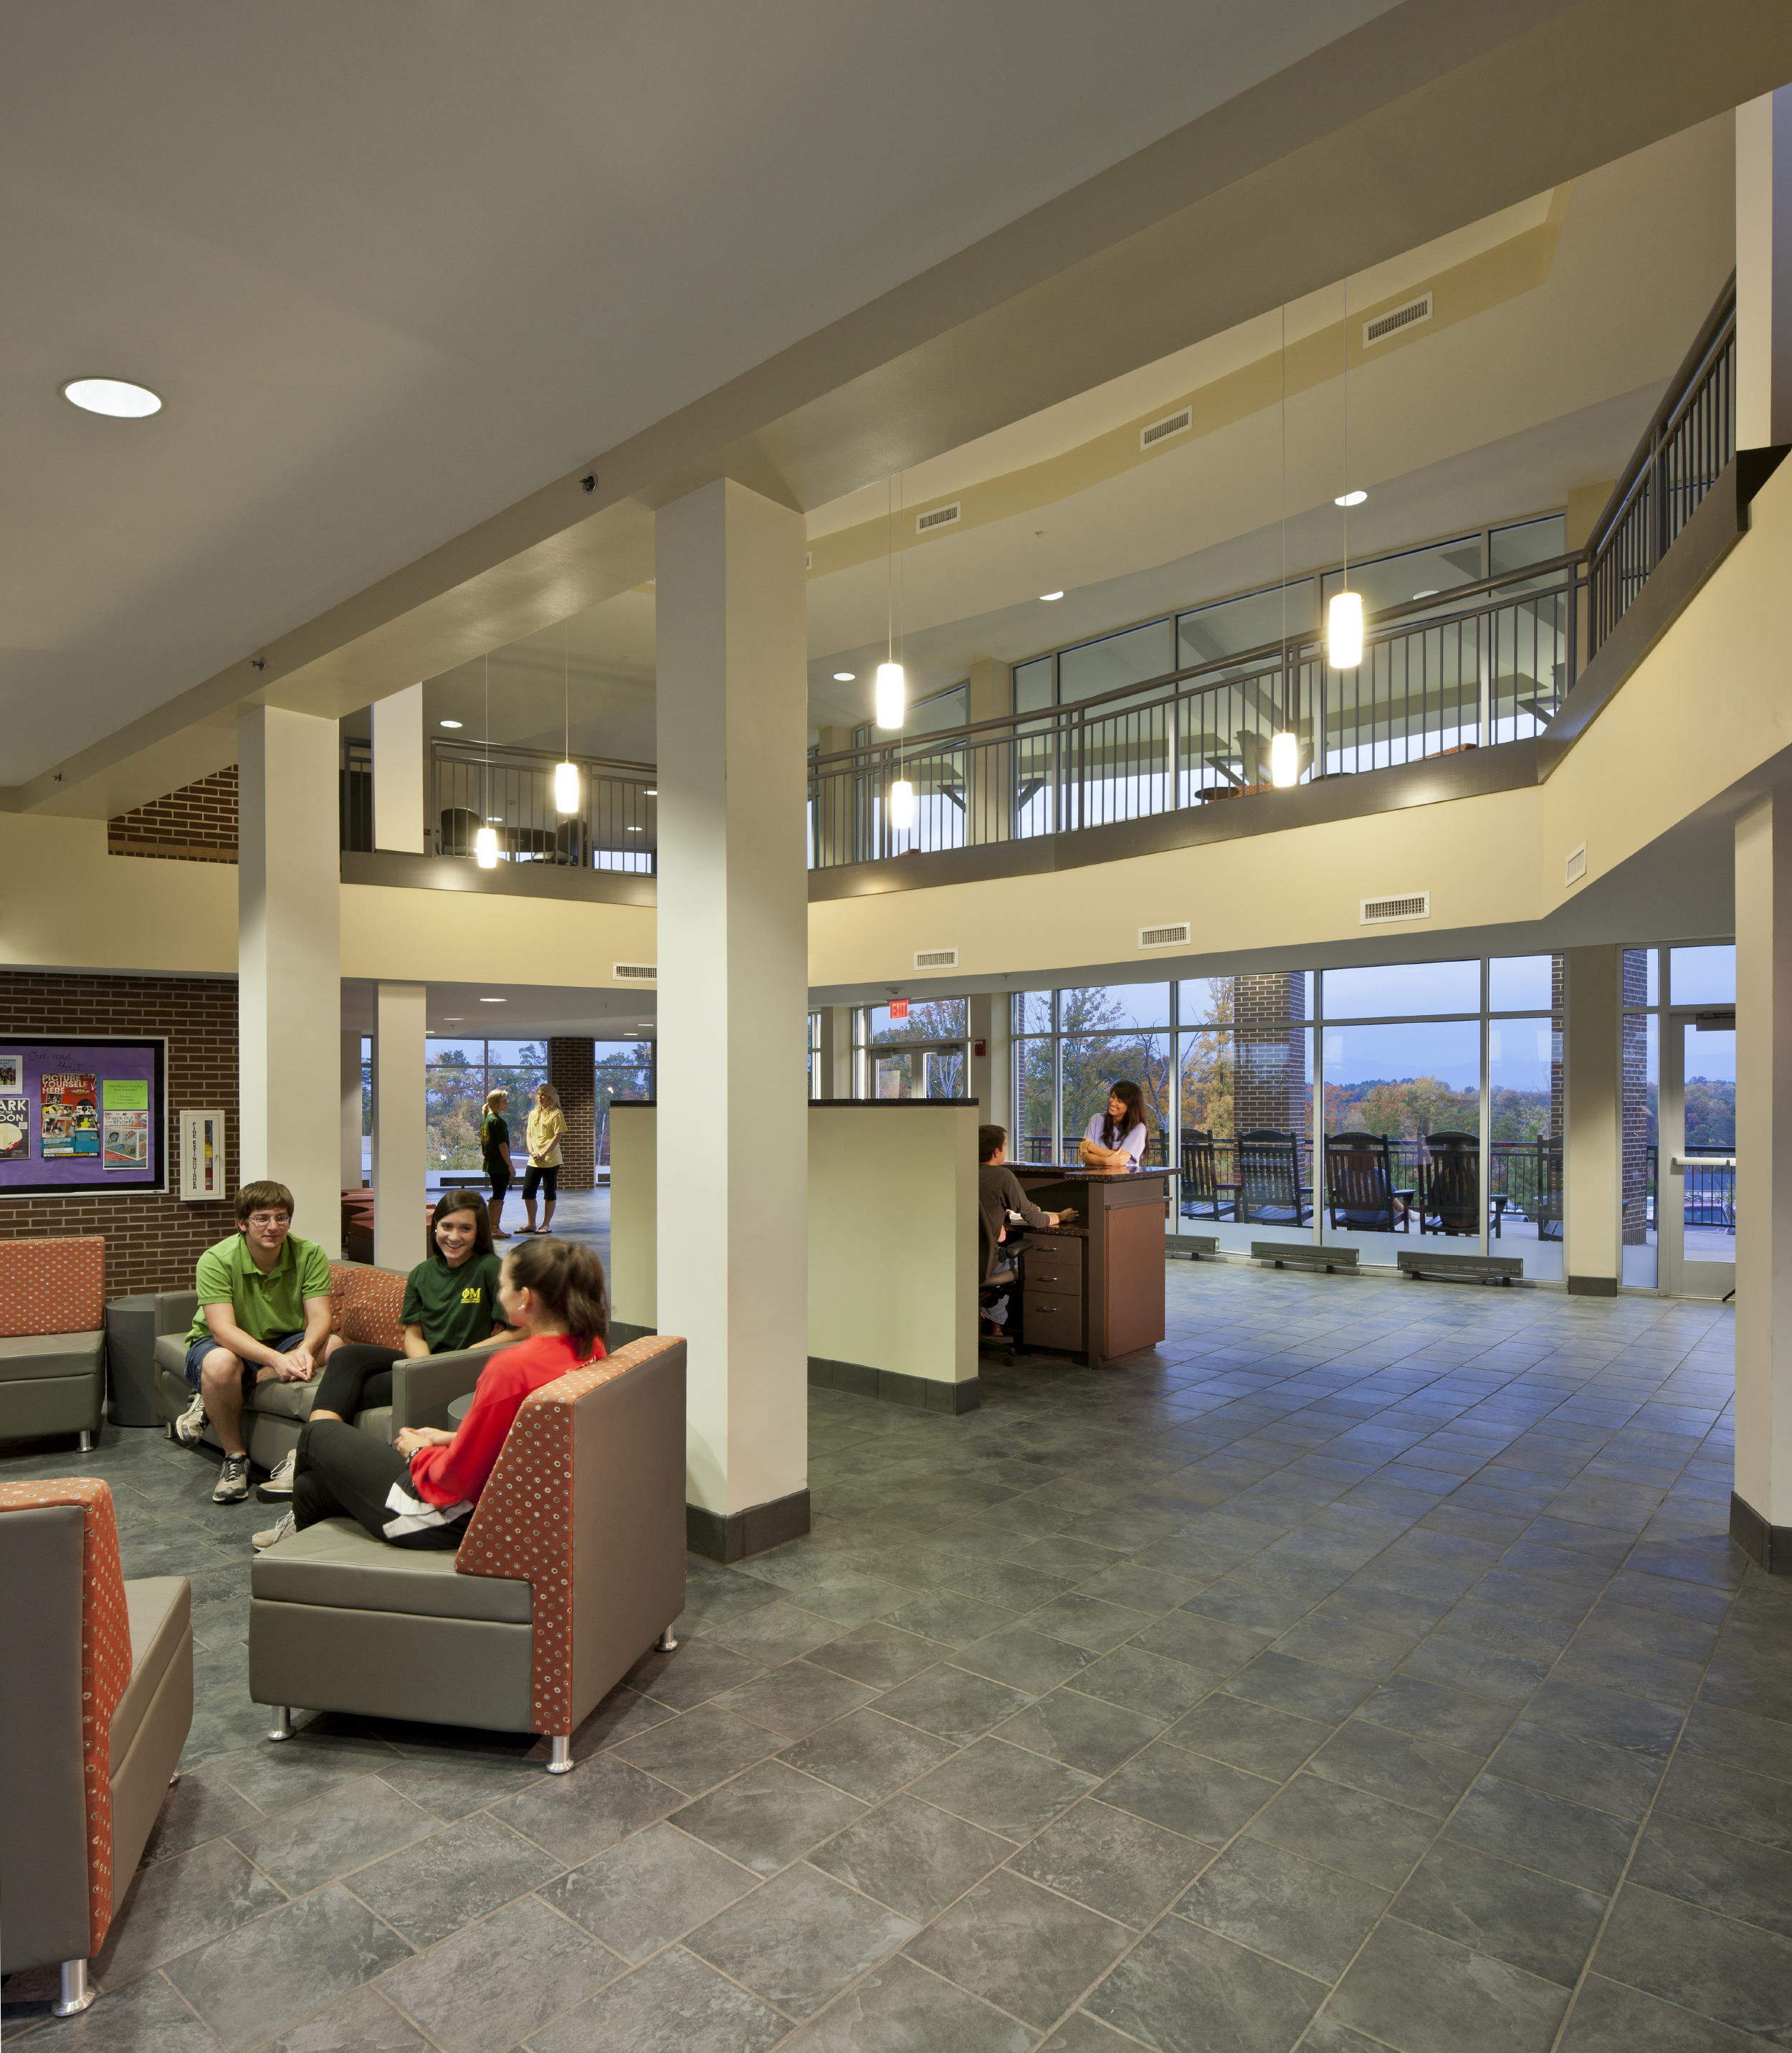 The two-story lobby at North Georgia Suites at North Georgia College & State University serves as a joint community area with shared social areas, kitchens and media, game and pool rooms. The lobby features a granite stone fireplace and great views of the mountains through its front and back floor-to-ceiling glass entries. Photo copyright 2011 Jonathan Hillyer / Atlanta